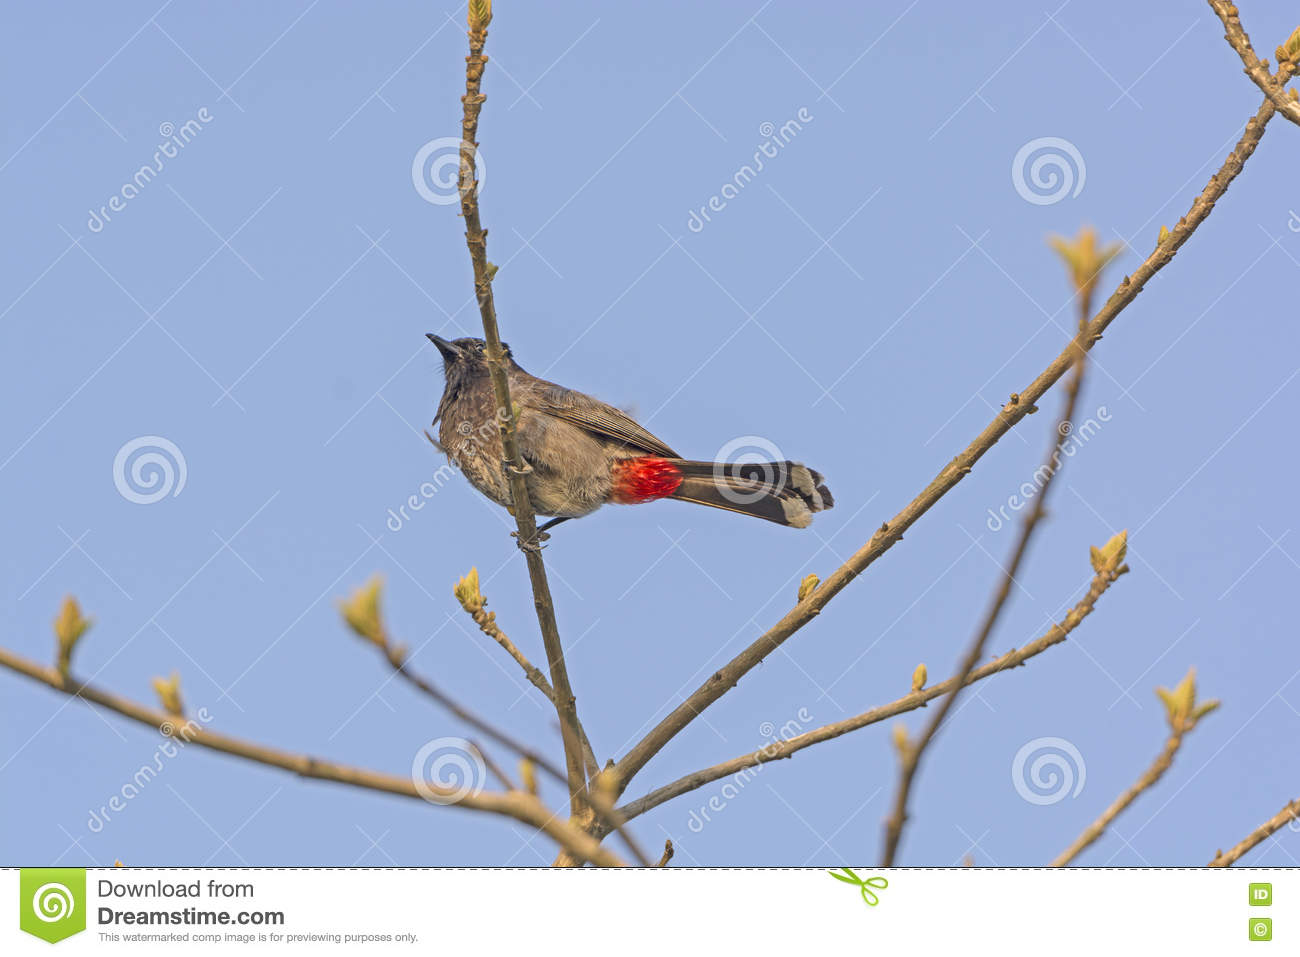 Red Vented Bulbul in a Tree